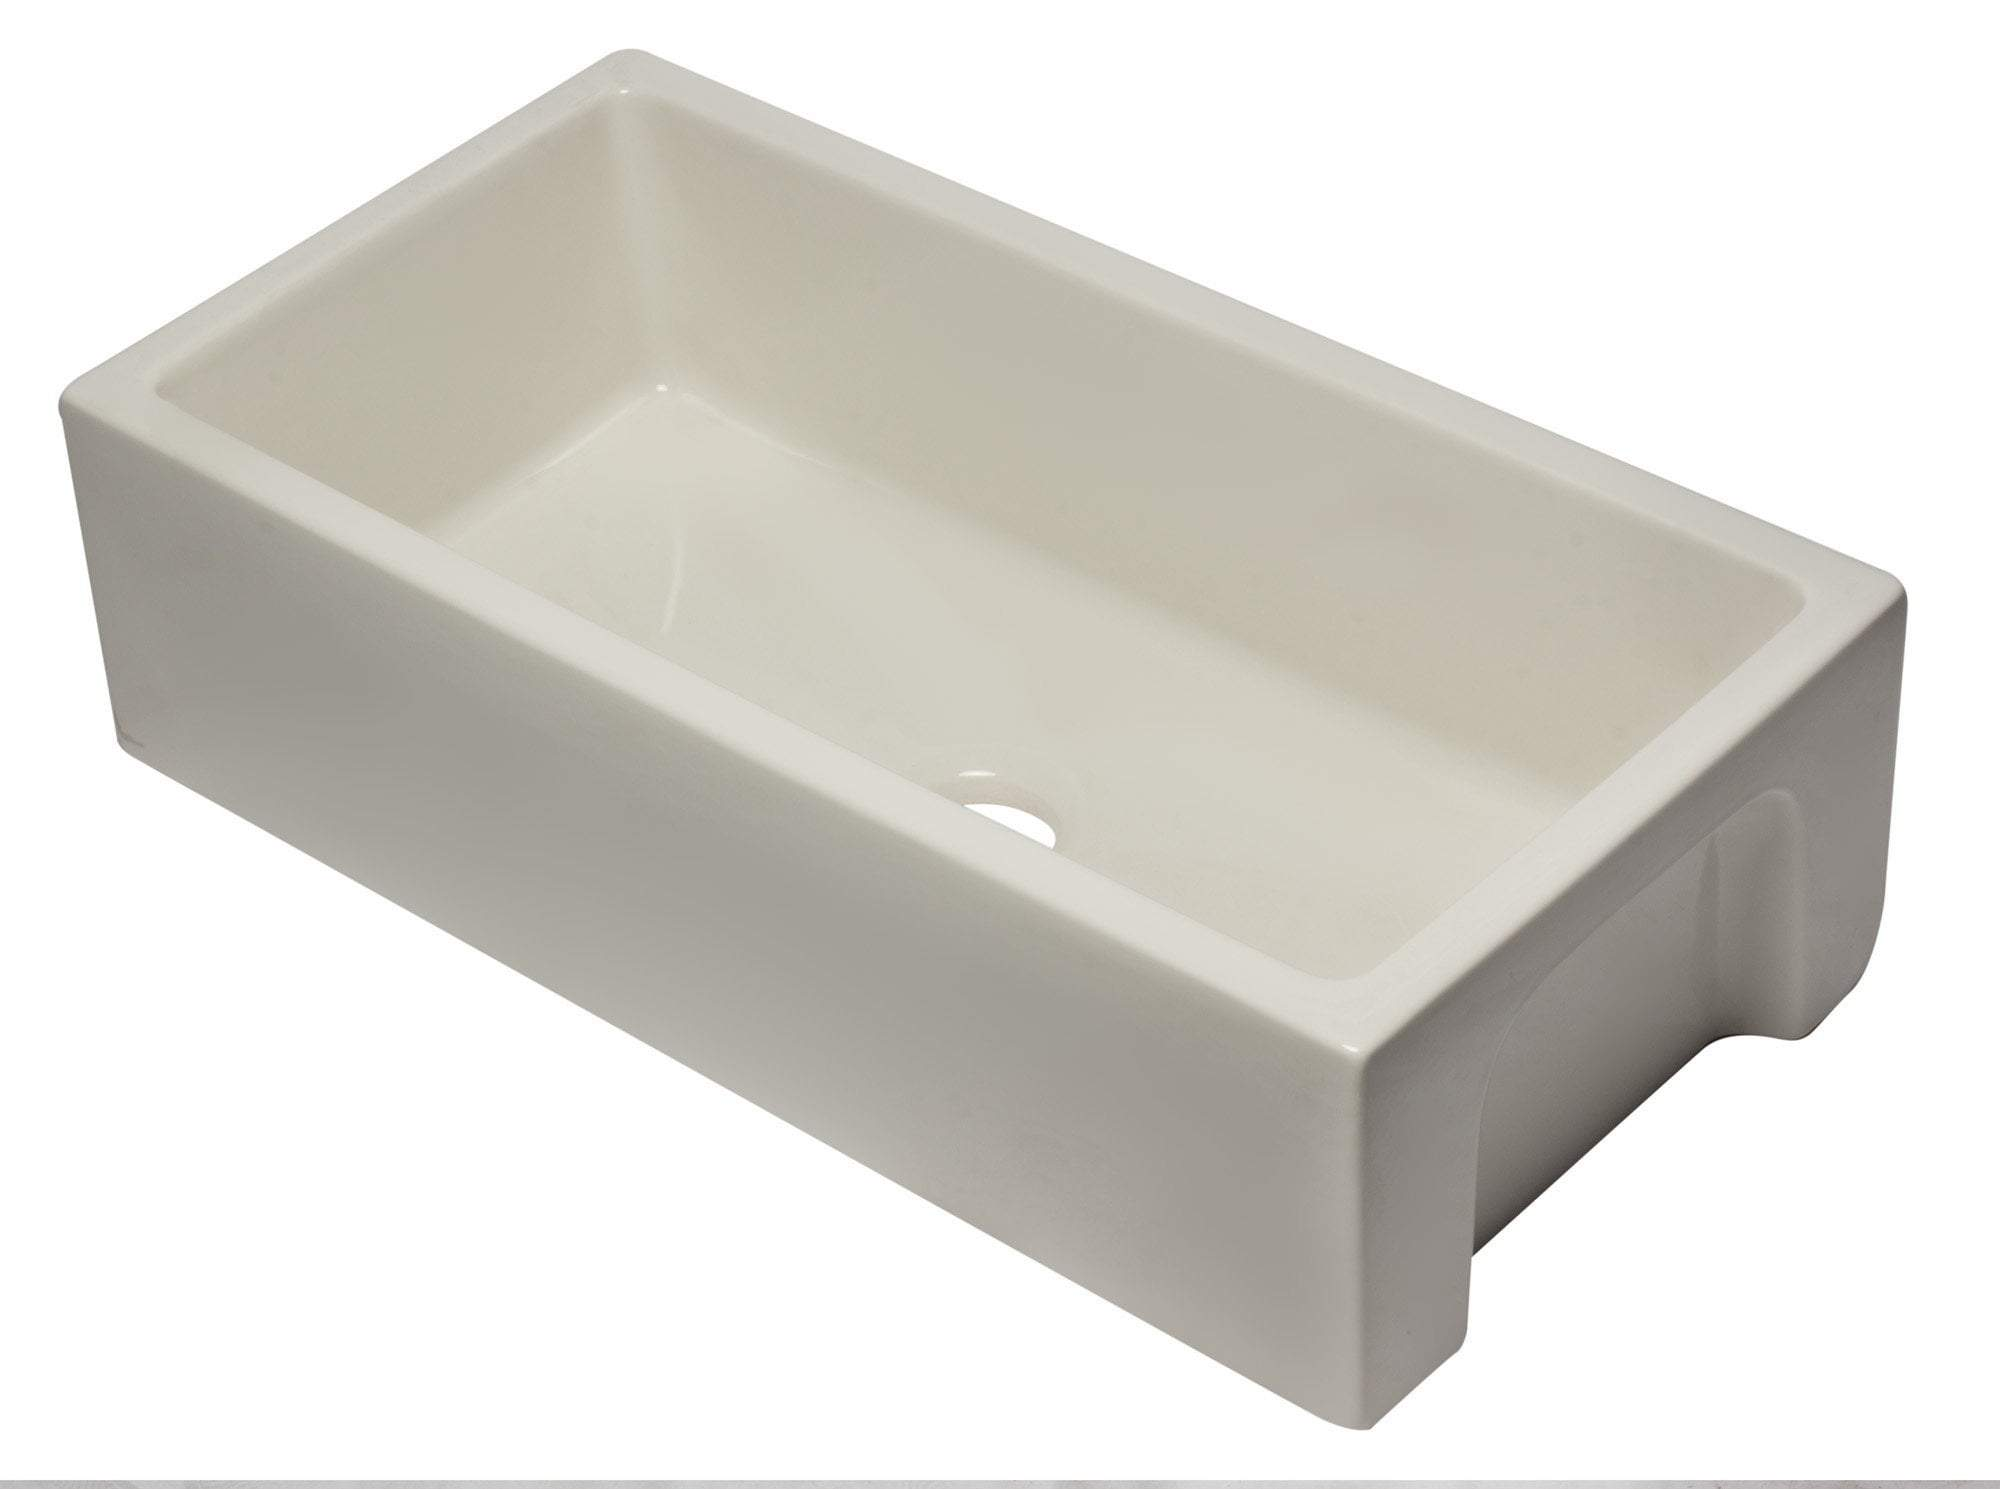 36 inch Biscuit Reversible Smooth / Fluted Single Bowl Fireclay Farm Sink